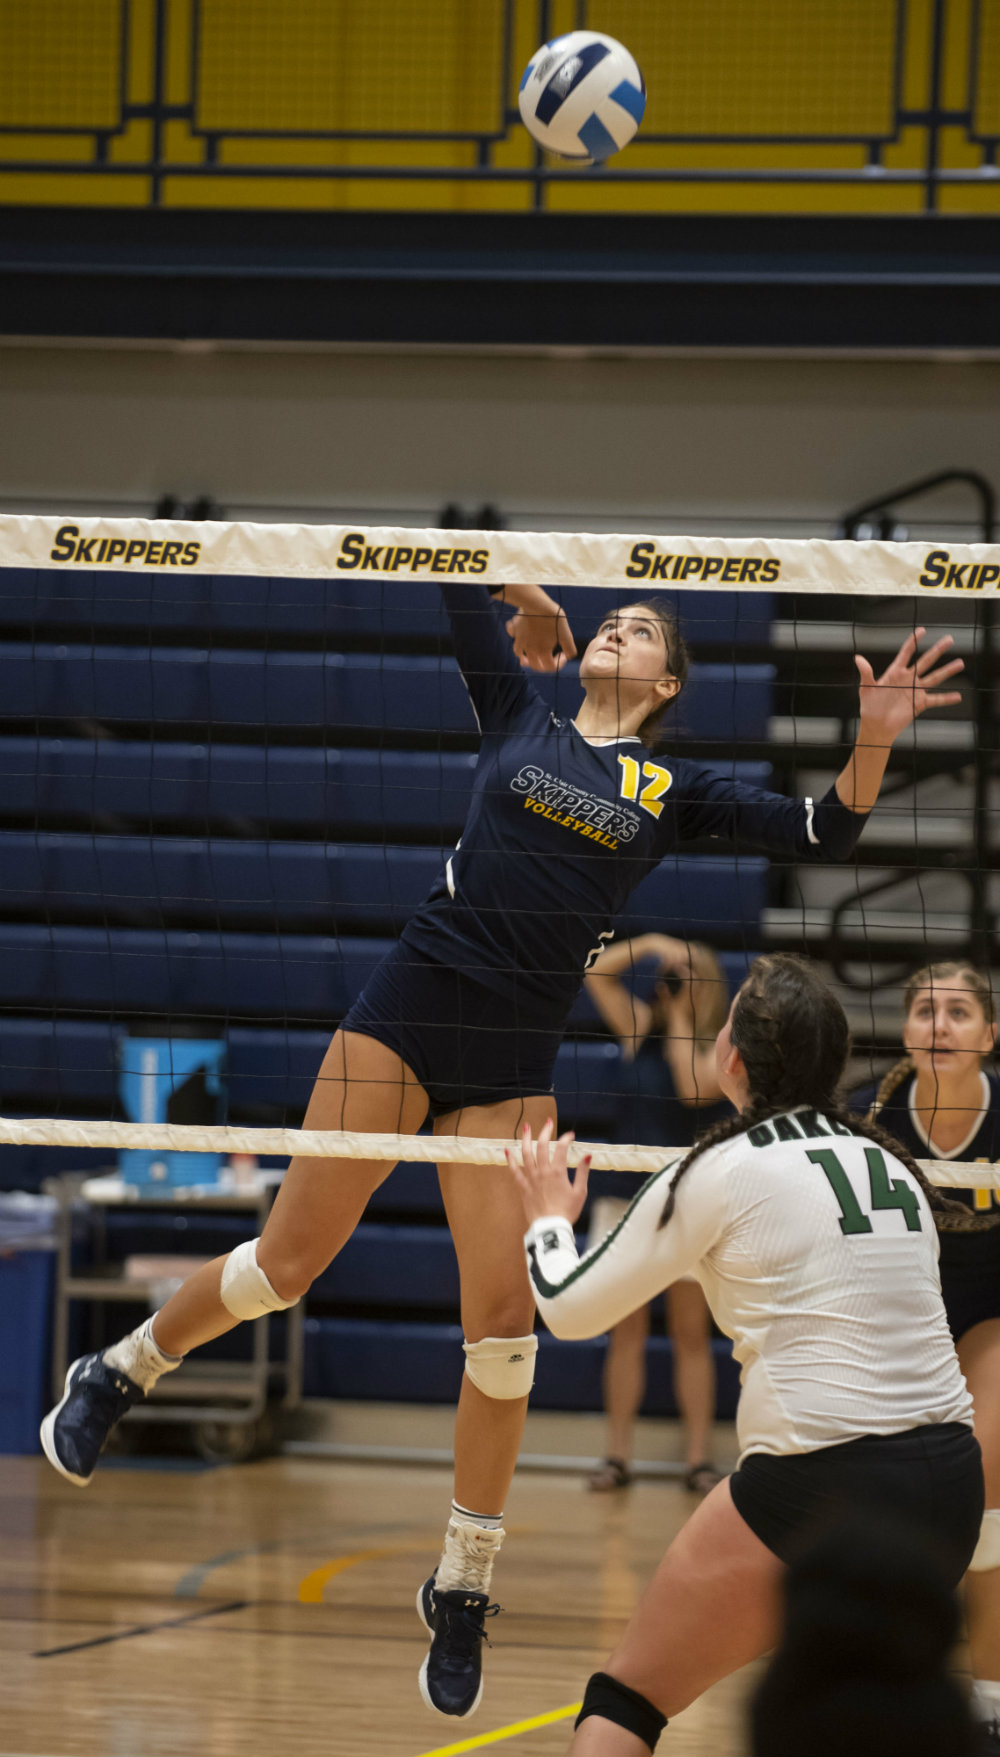 SC4 to host community tailgate before Sept. 18 volleyball match